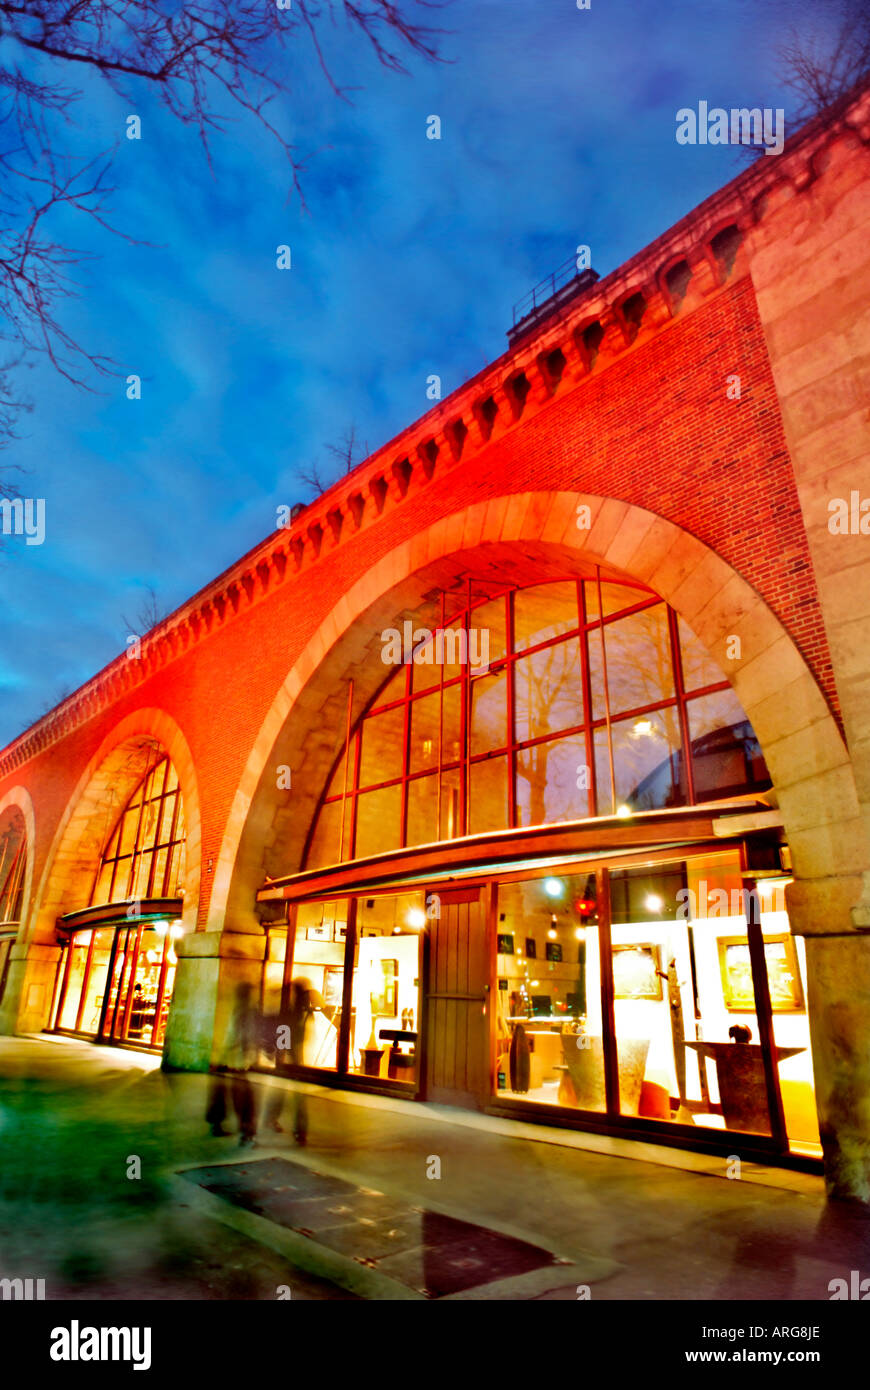 Paris France, Shopping Renovated Railroad Overpass, Small Shops, 'Viaduc des Arts' Night, Christmas Light Decorations - Stock Image